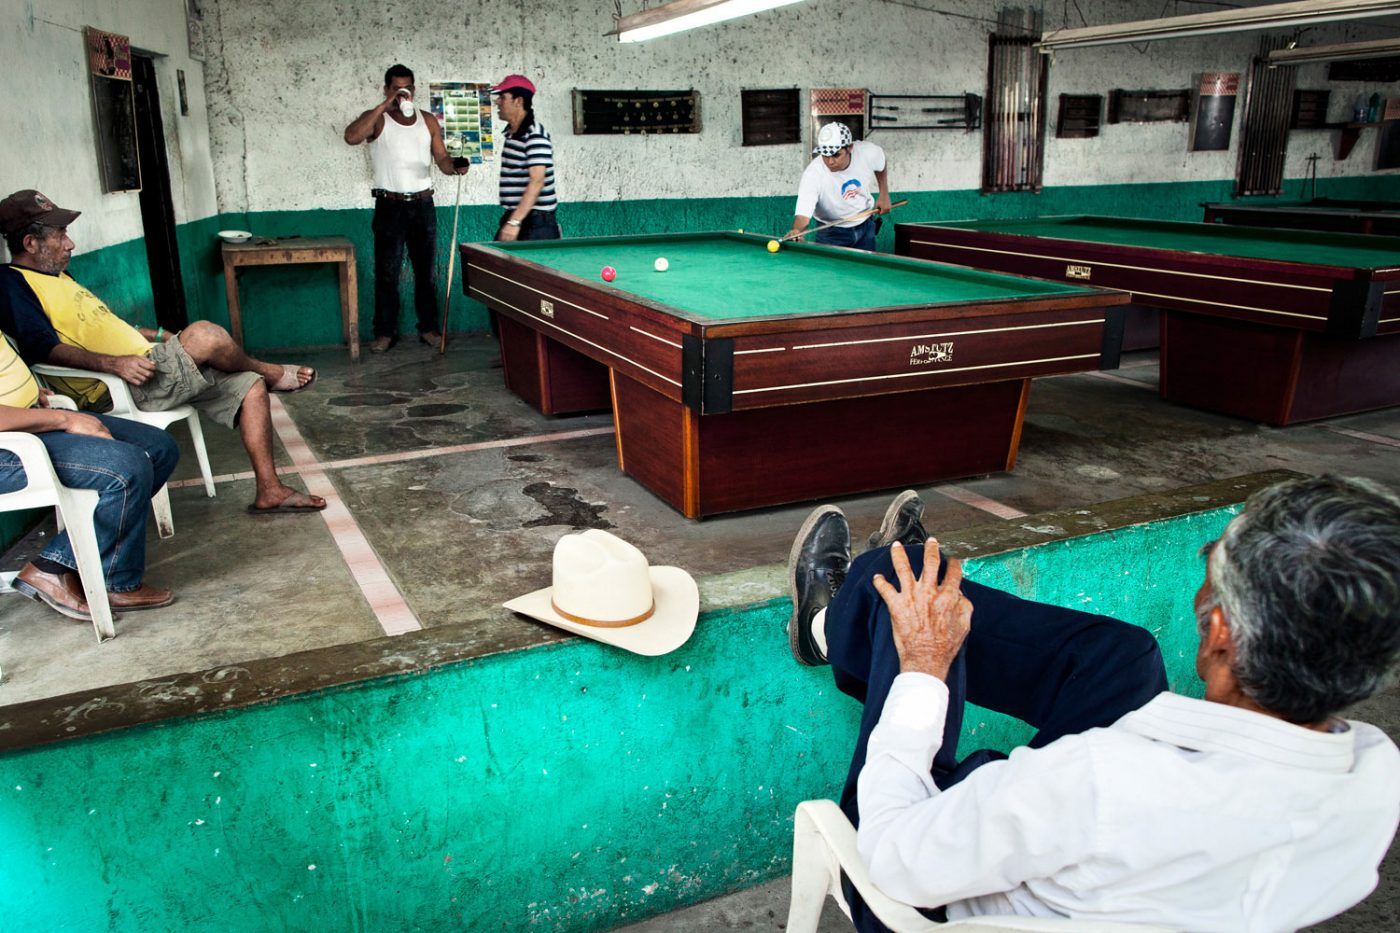 Billiard players in Mexican streets